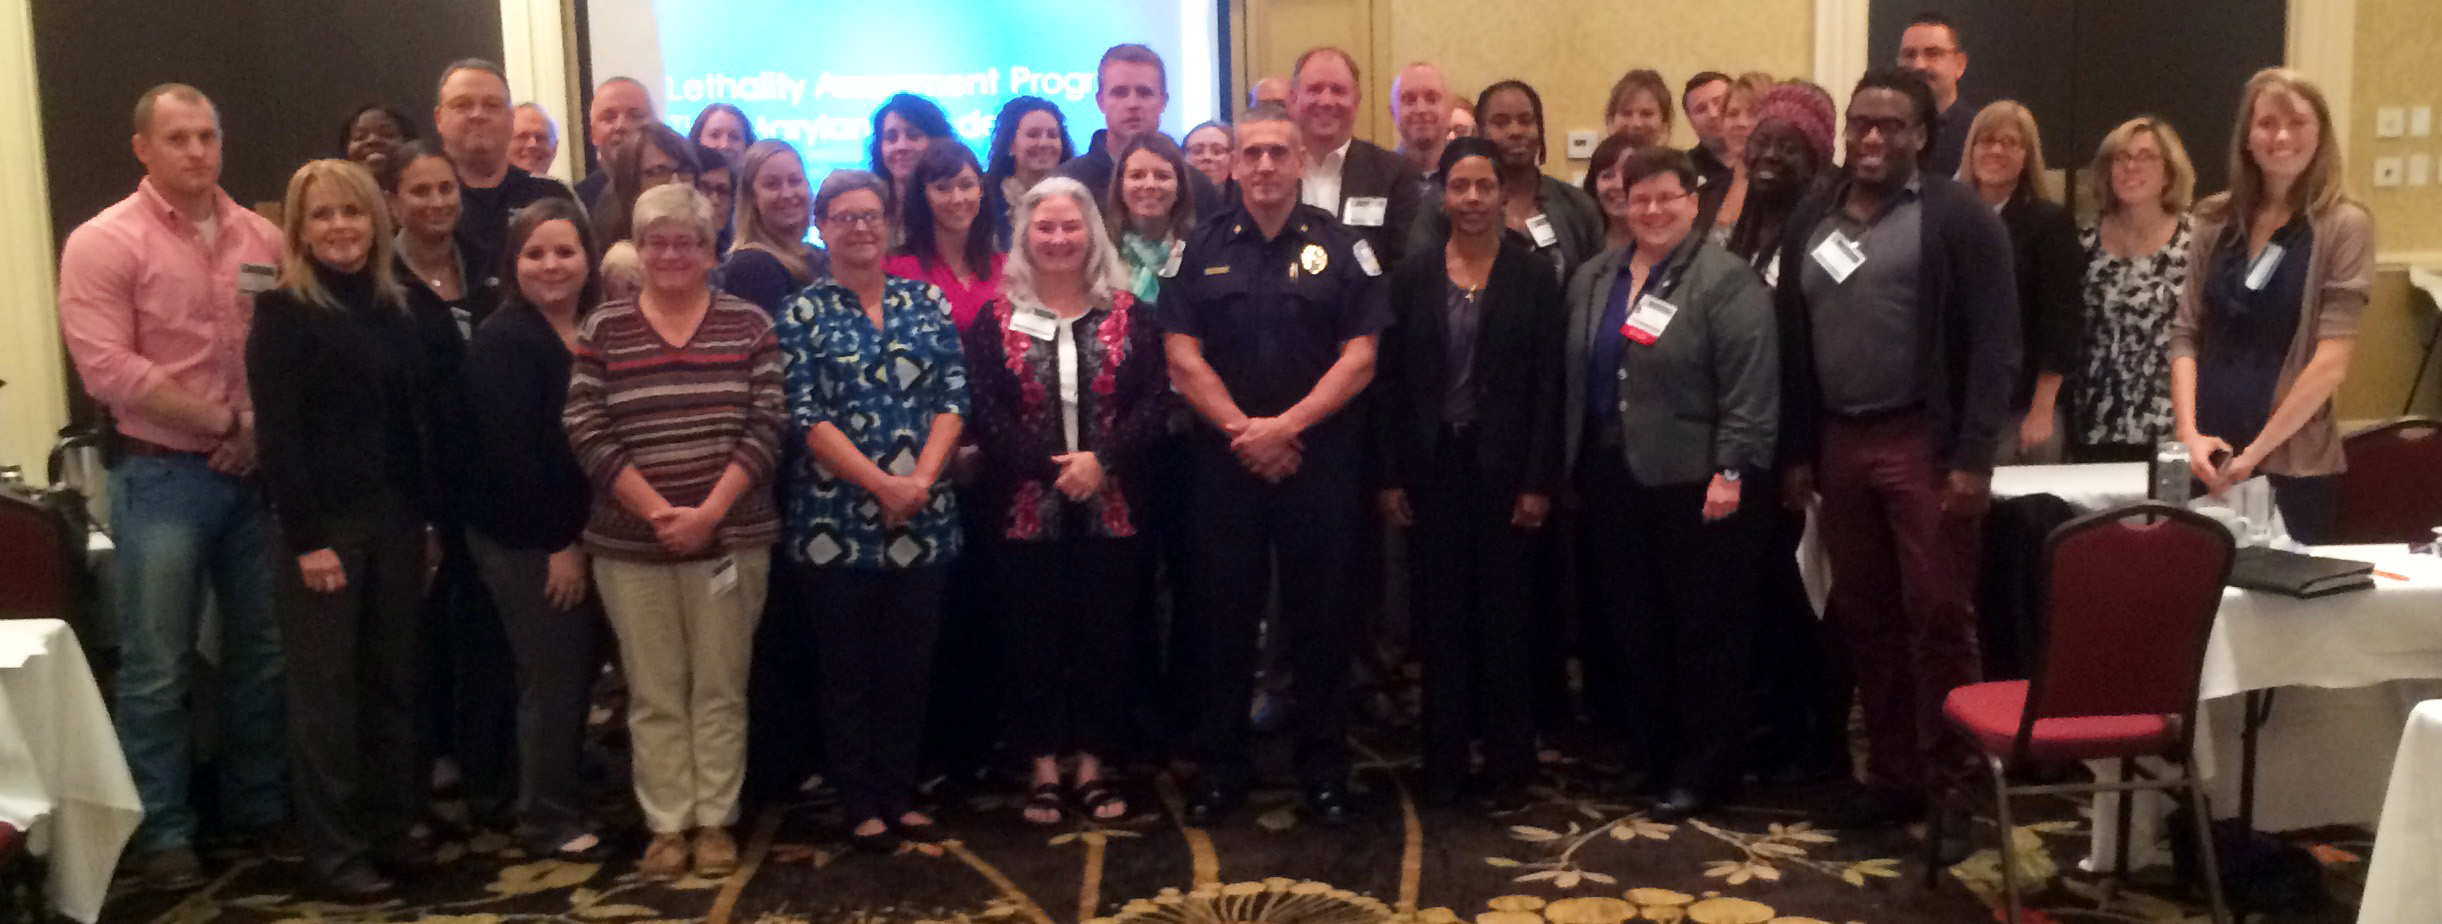 Group photo from the Lethality Assessment Program training